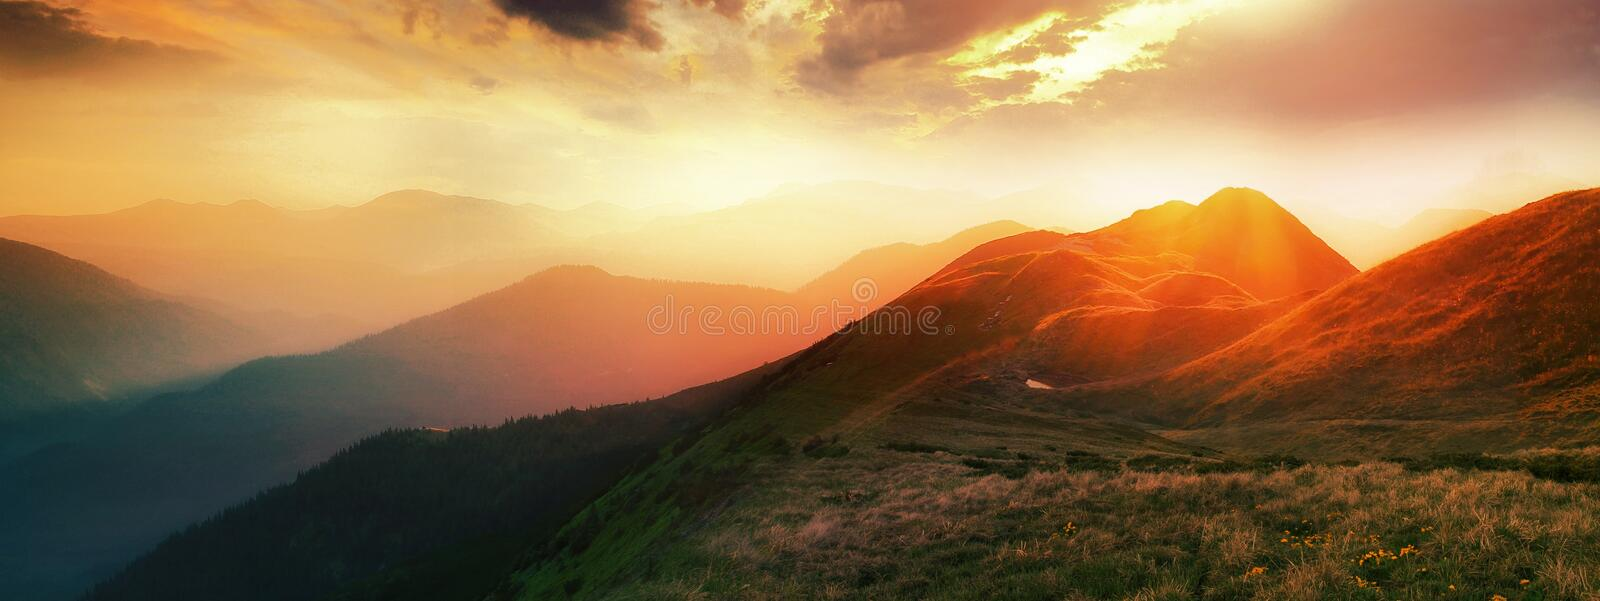 Colorful landscape in the mountains, America travel, beauty world stock image